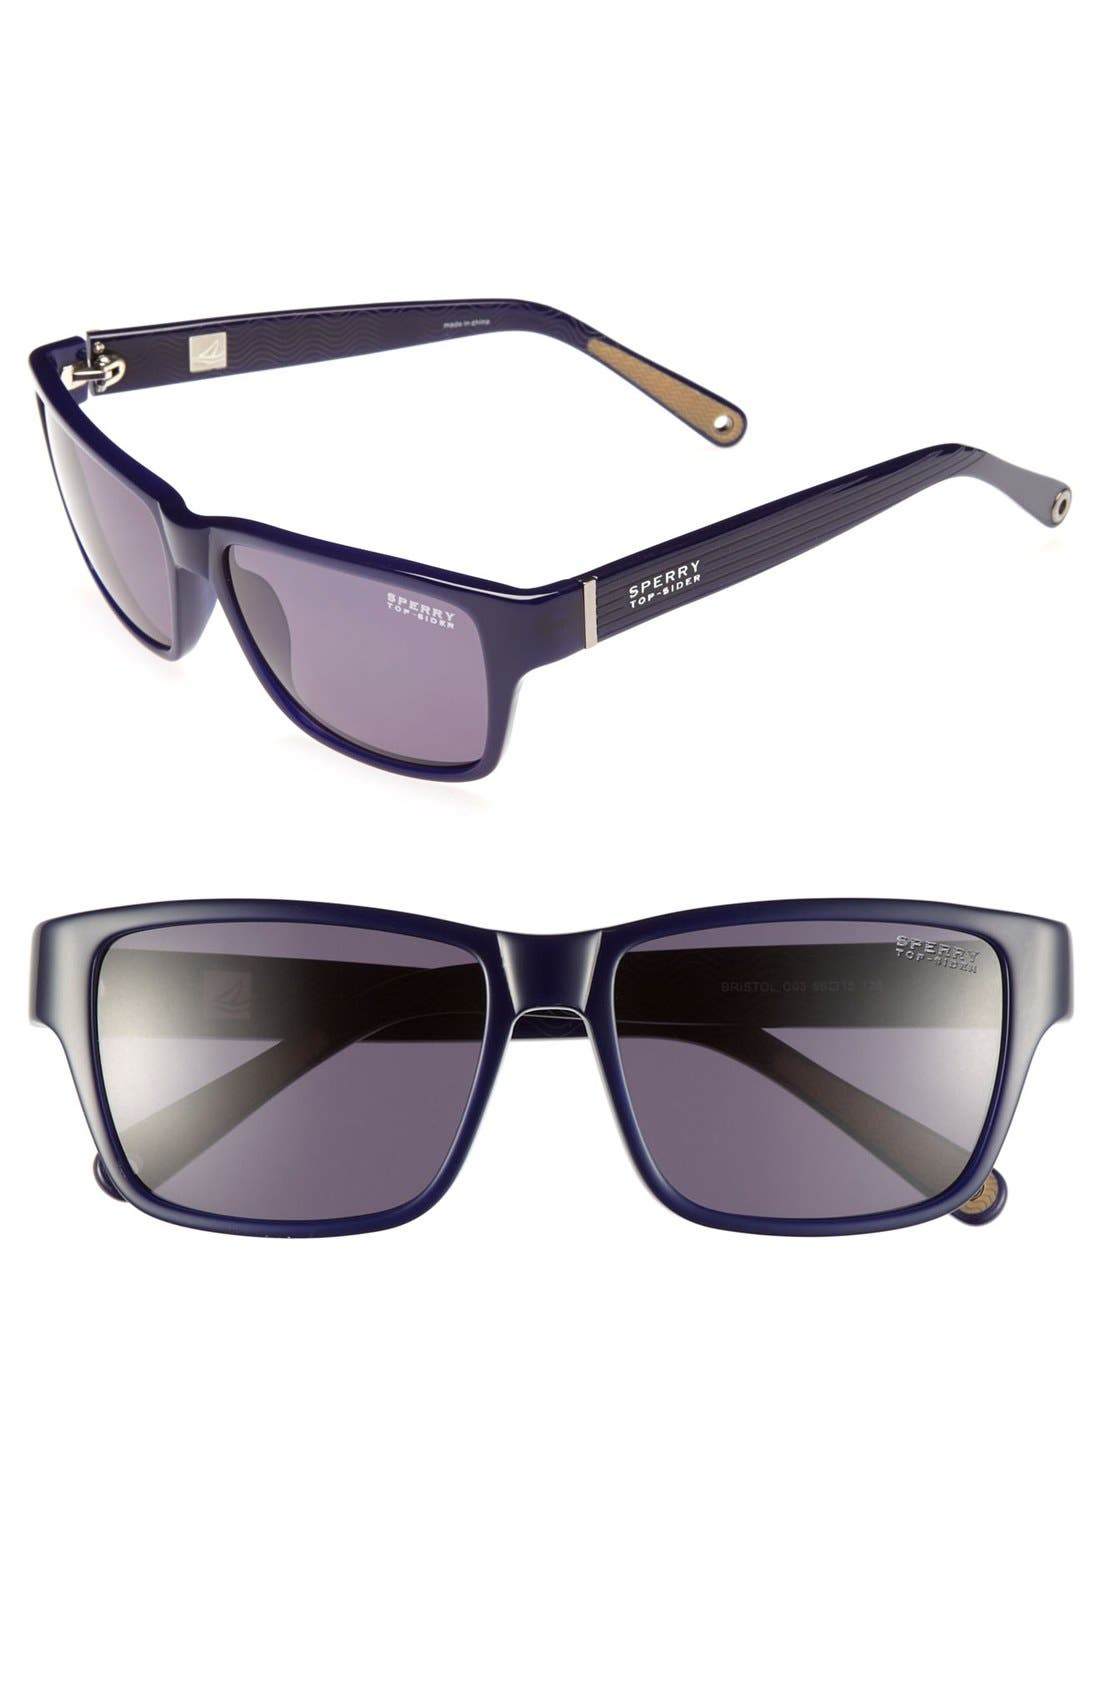 Alternate Image 1 Selected - Sperry Top-Sider® 'Bristol' 56mm Sunglasses (Online Only)